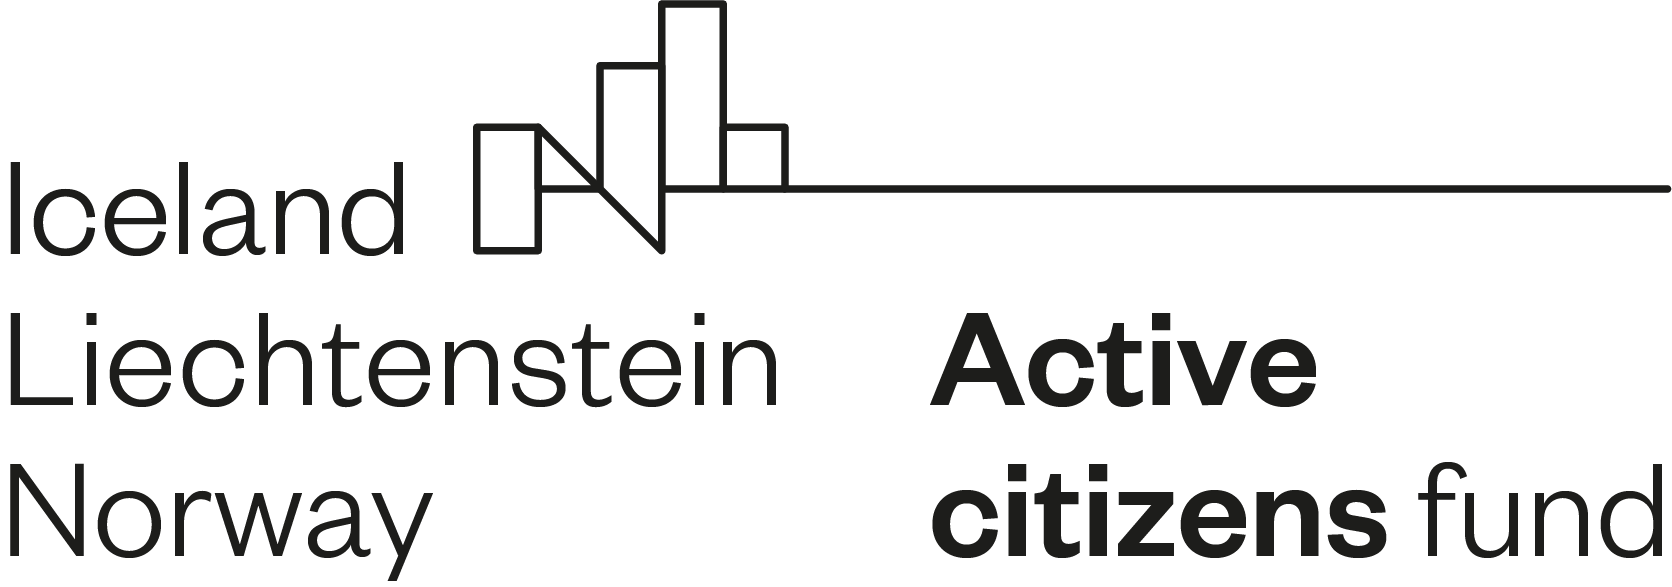 Active-citizens-fund@2x